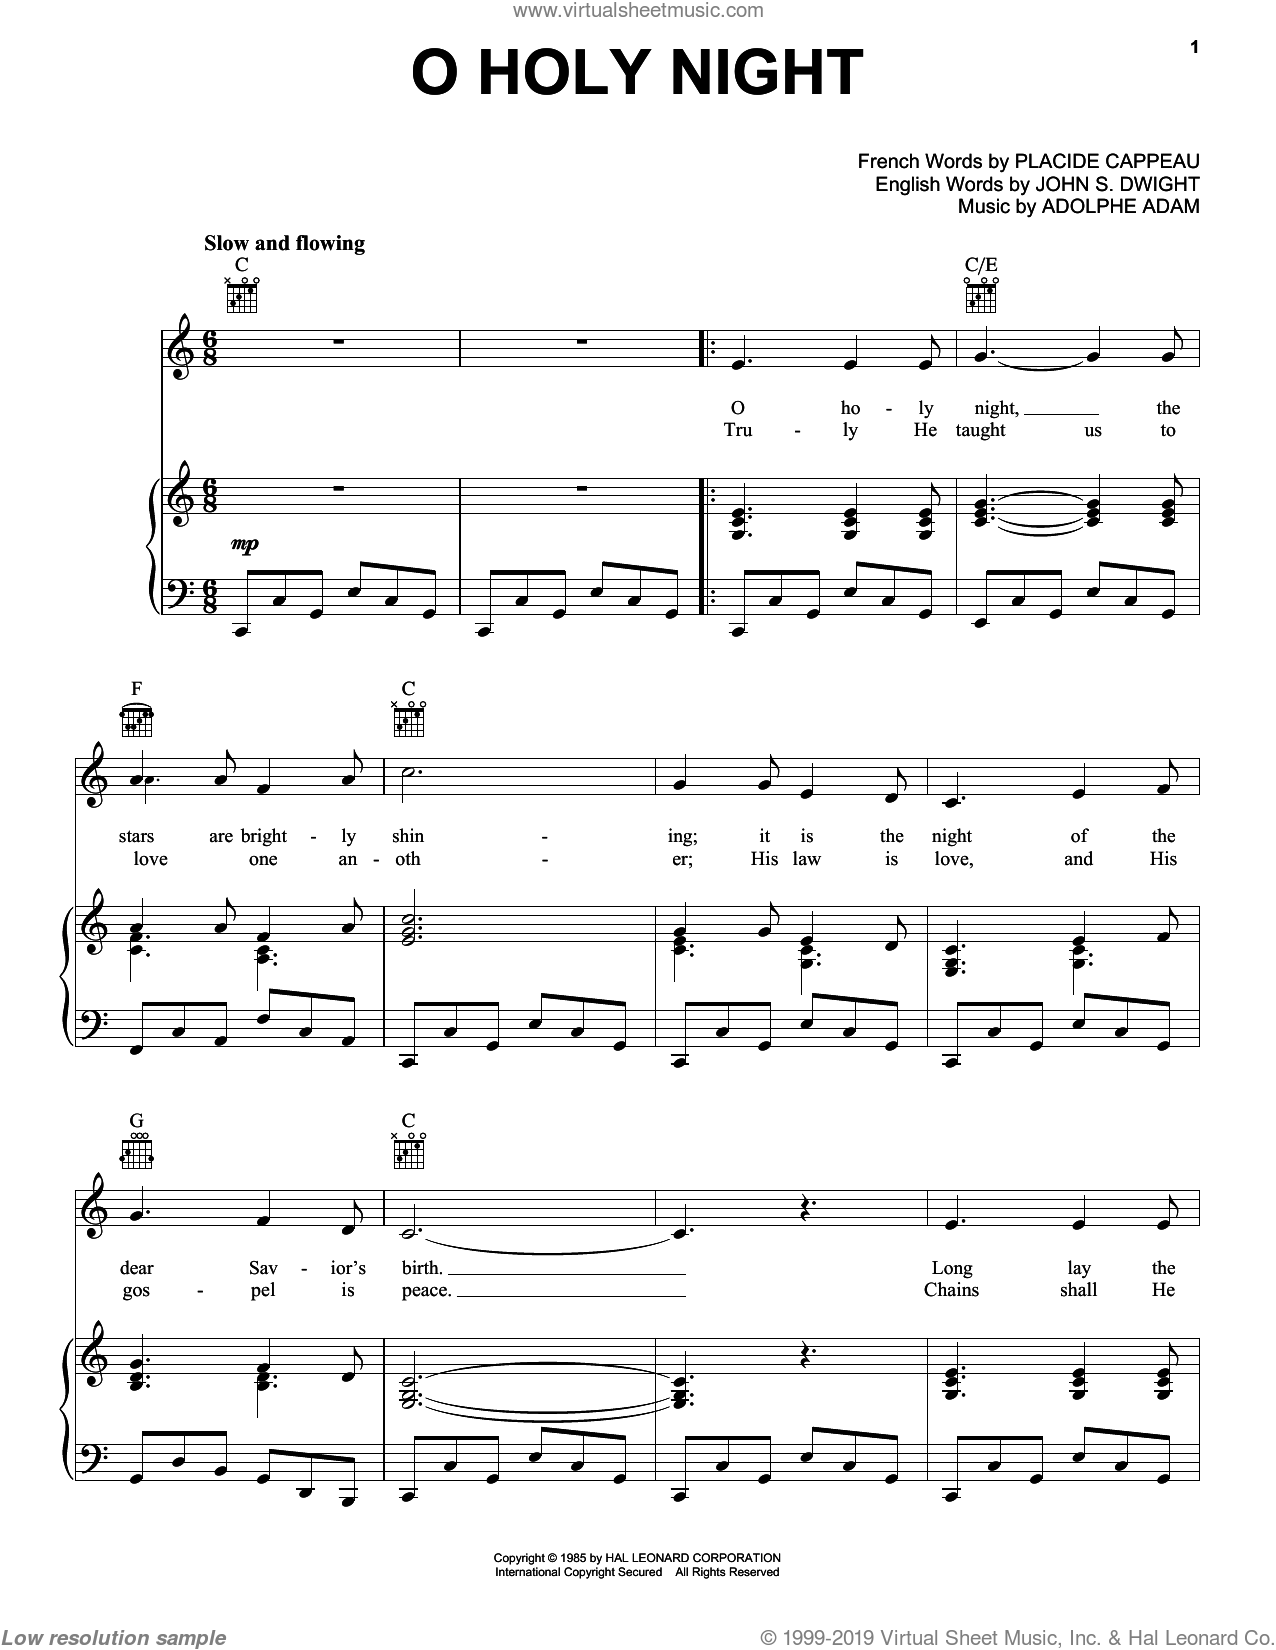 O Holy Night sheet music for voice, piano or guitar by Placide Cappeau